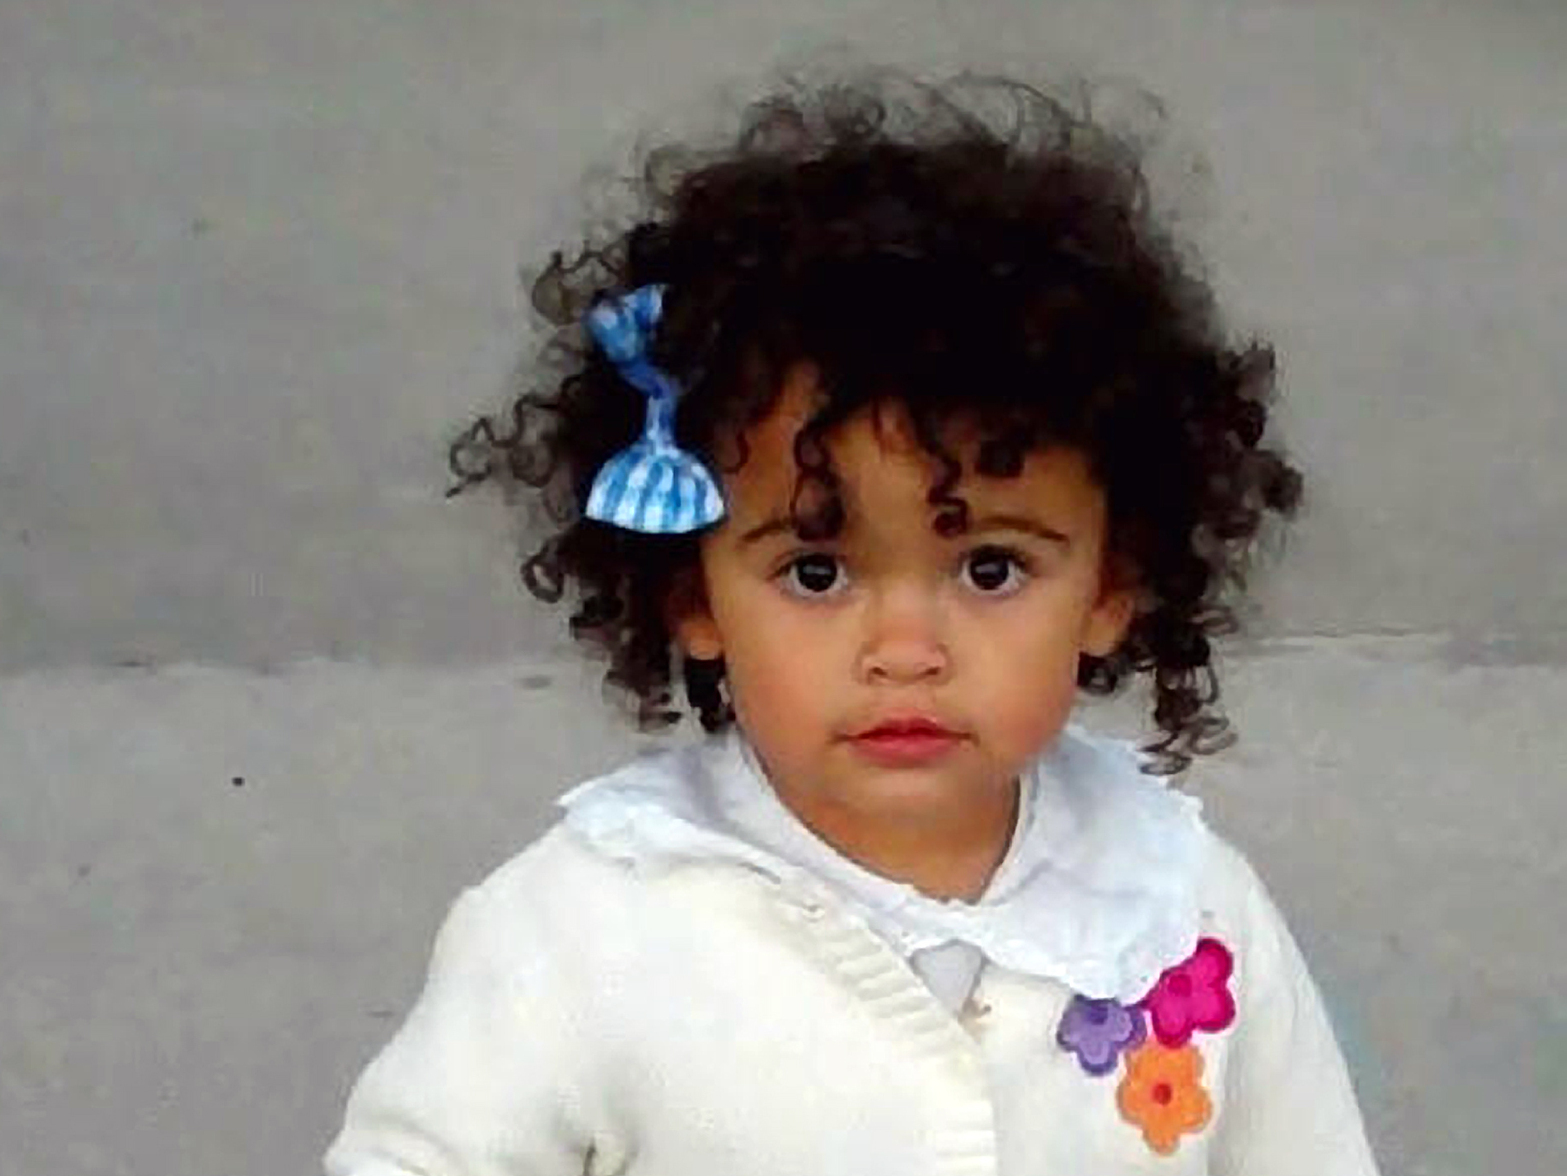 Okla. Court Puts Hold On Return Of 'Baby Veronica' To S.C.